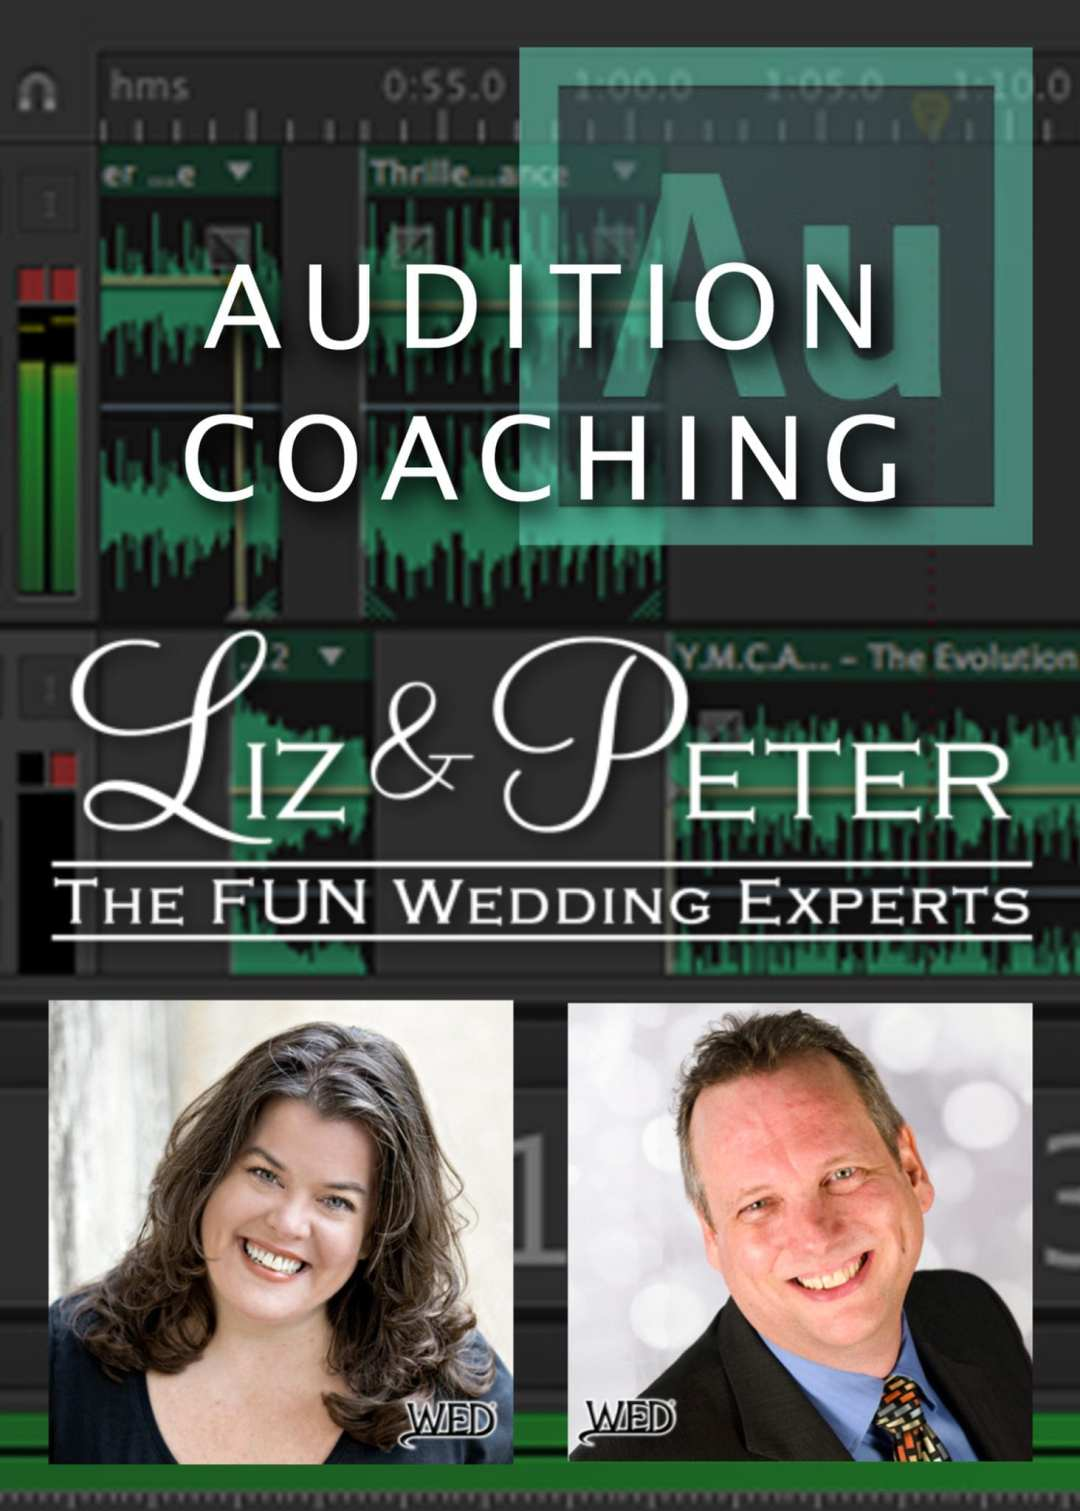 Liz Daley & Peter Merry's Hands-On Adobe Audtion Coaching Services